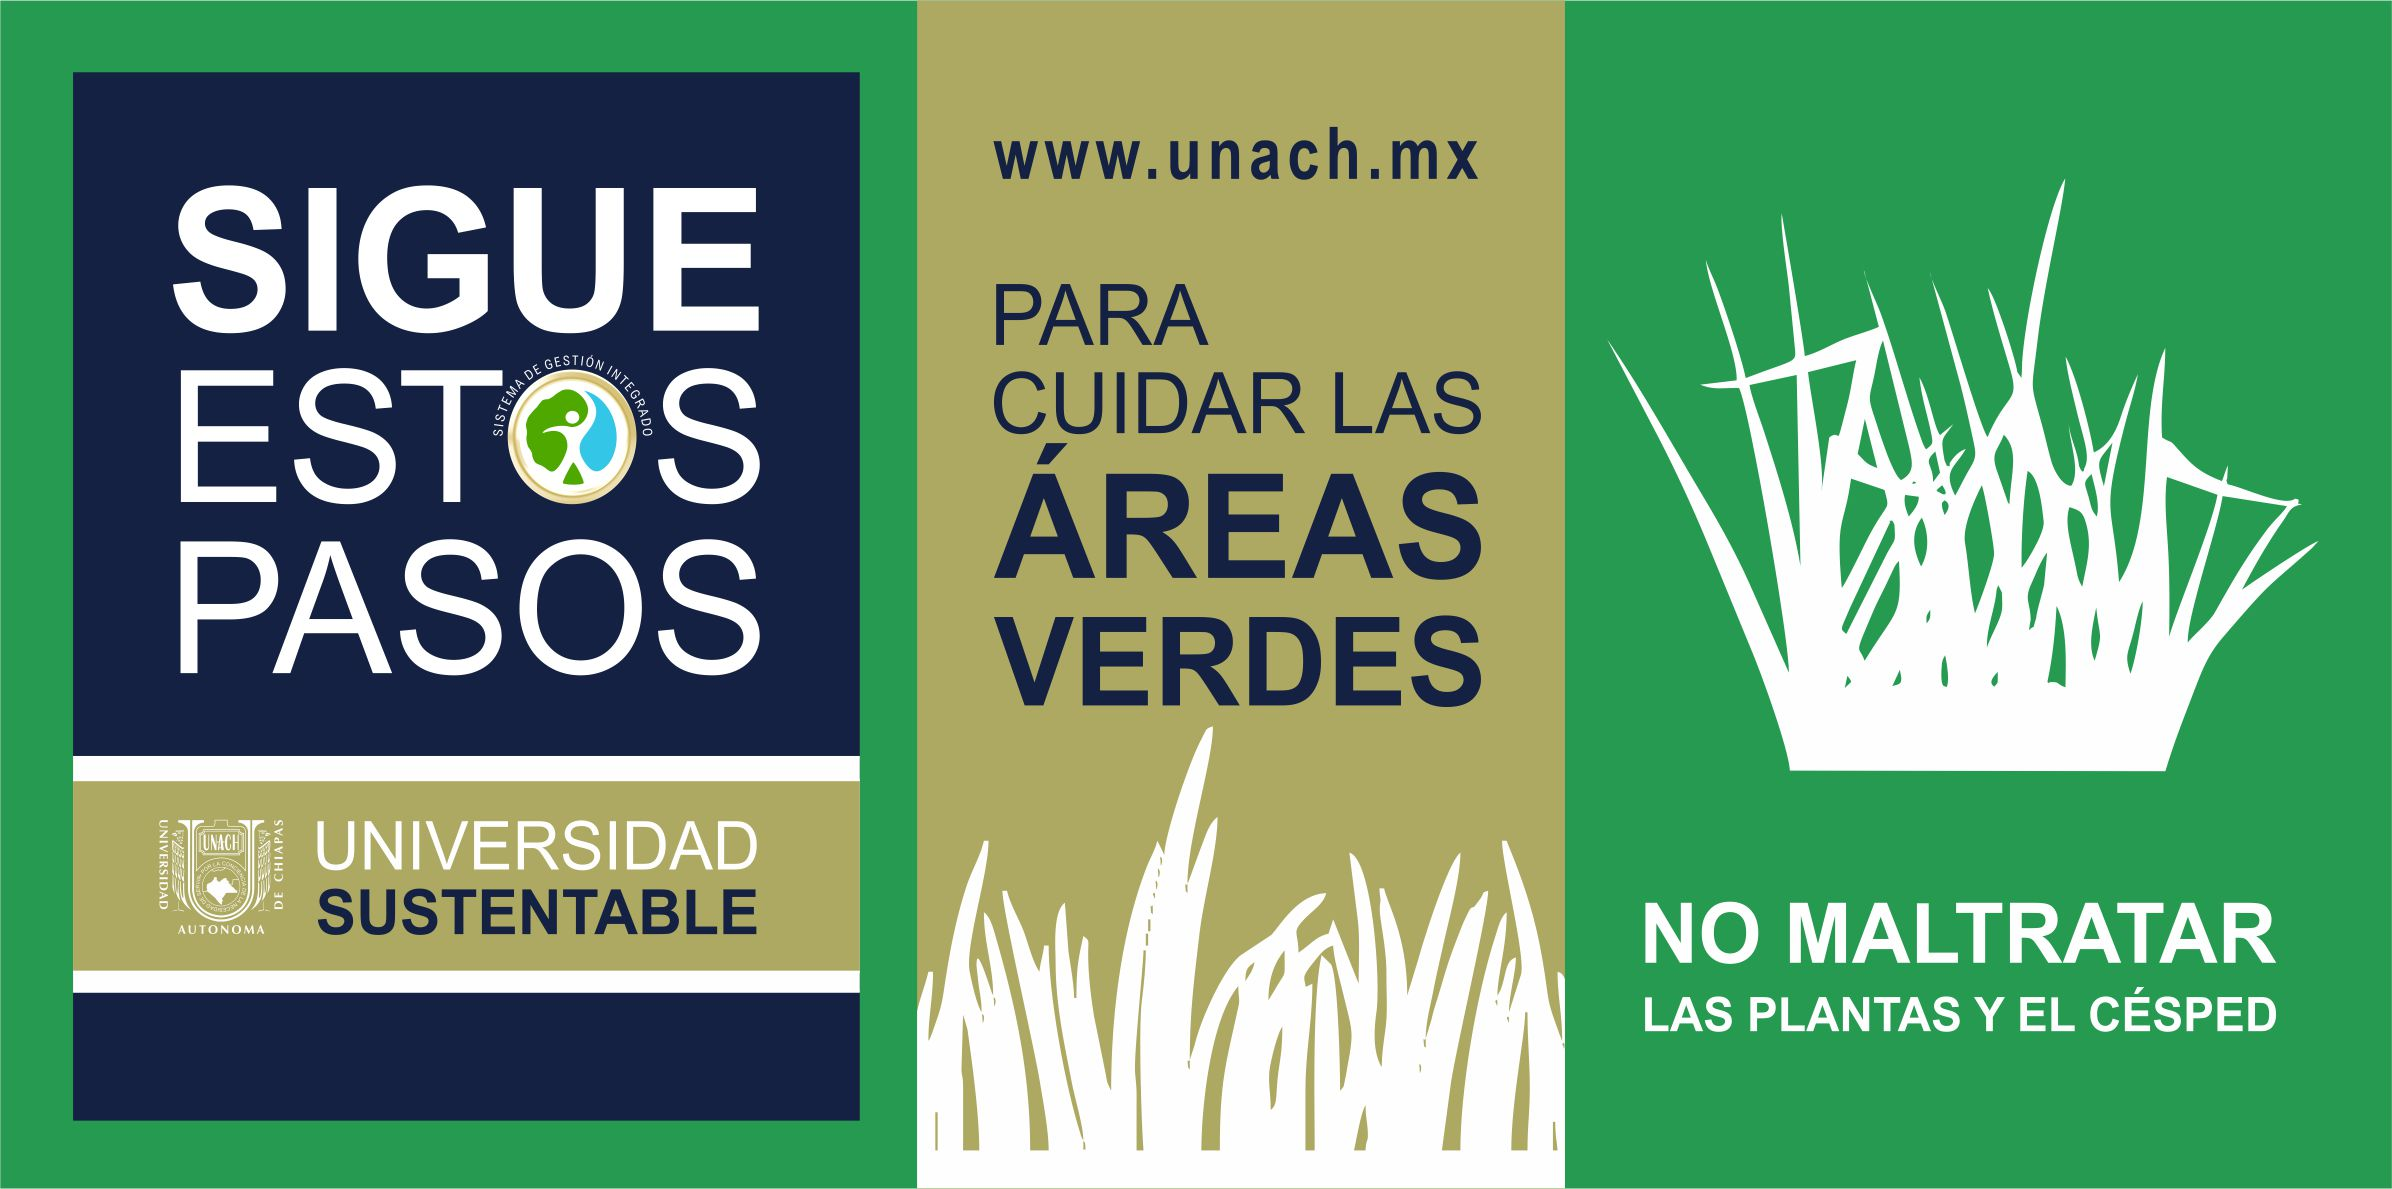 #UniversidadResponsable Cuida las áreas verdes #OrgulloUNACH